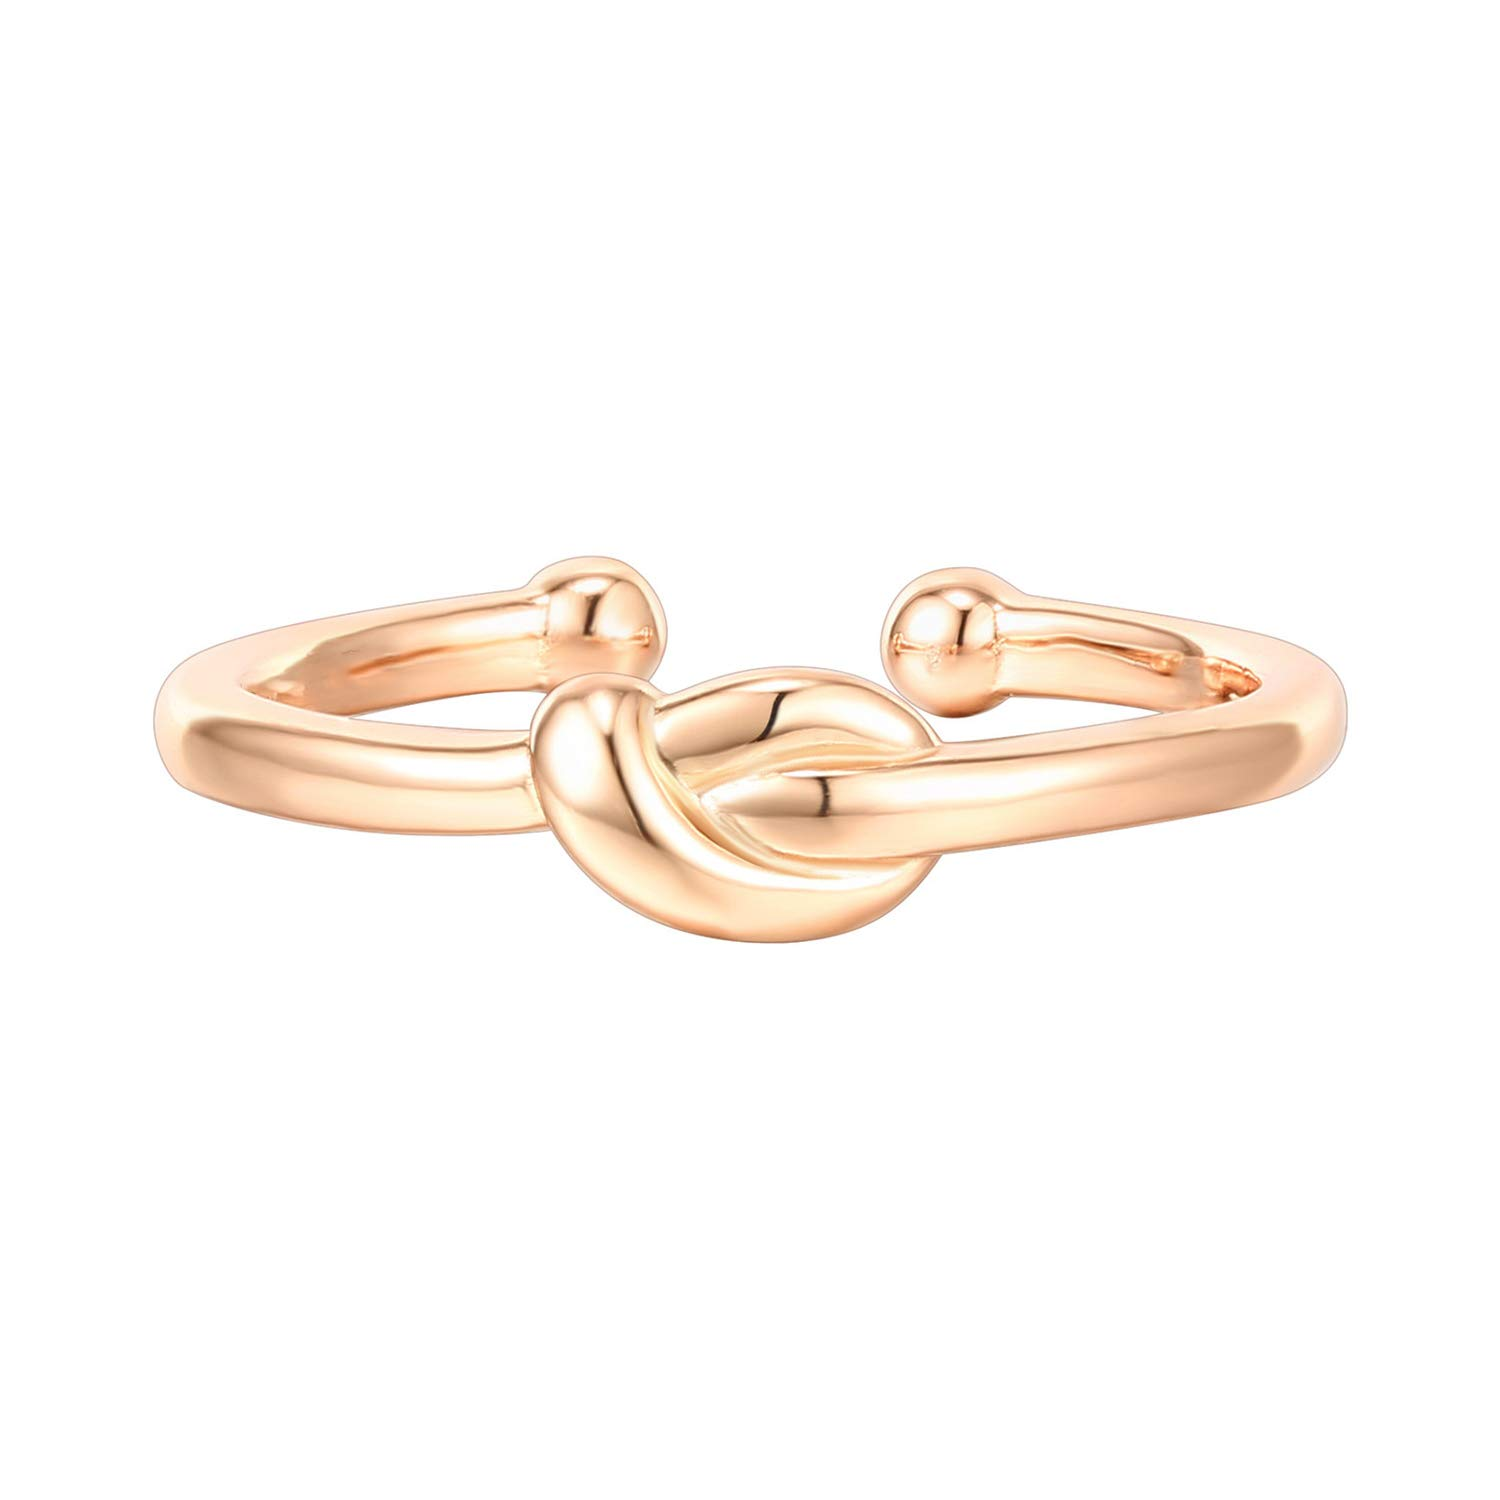 PAVOI 14K Gold Plated 925 Sterling Silver Rings for Women | Promise Rings for Her | Love Knot Stackable Rings | Rose Gold Rings by PAVOI